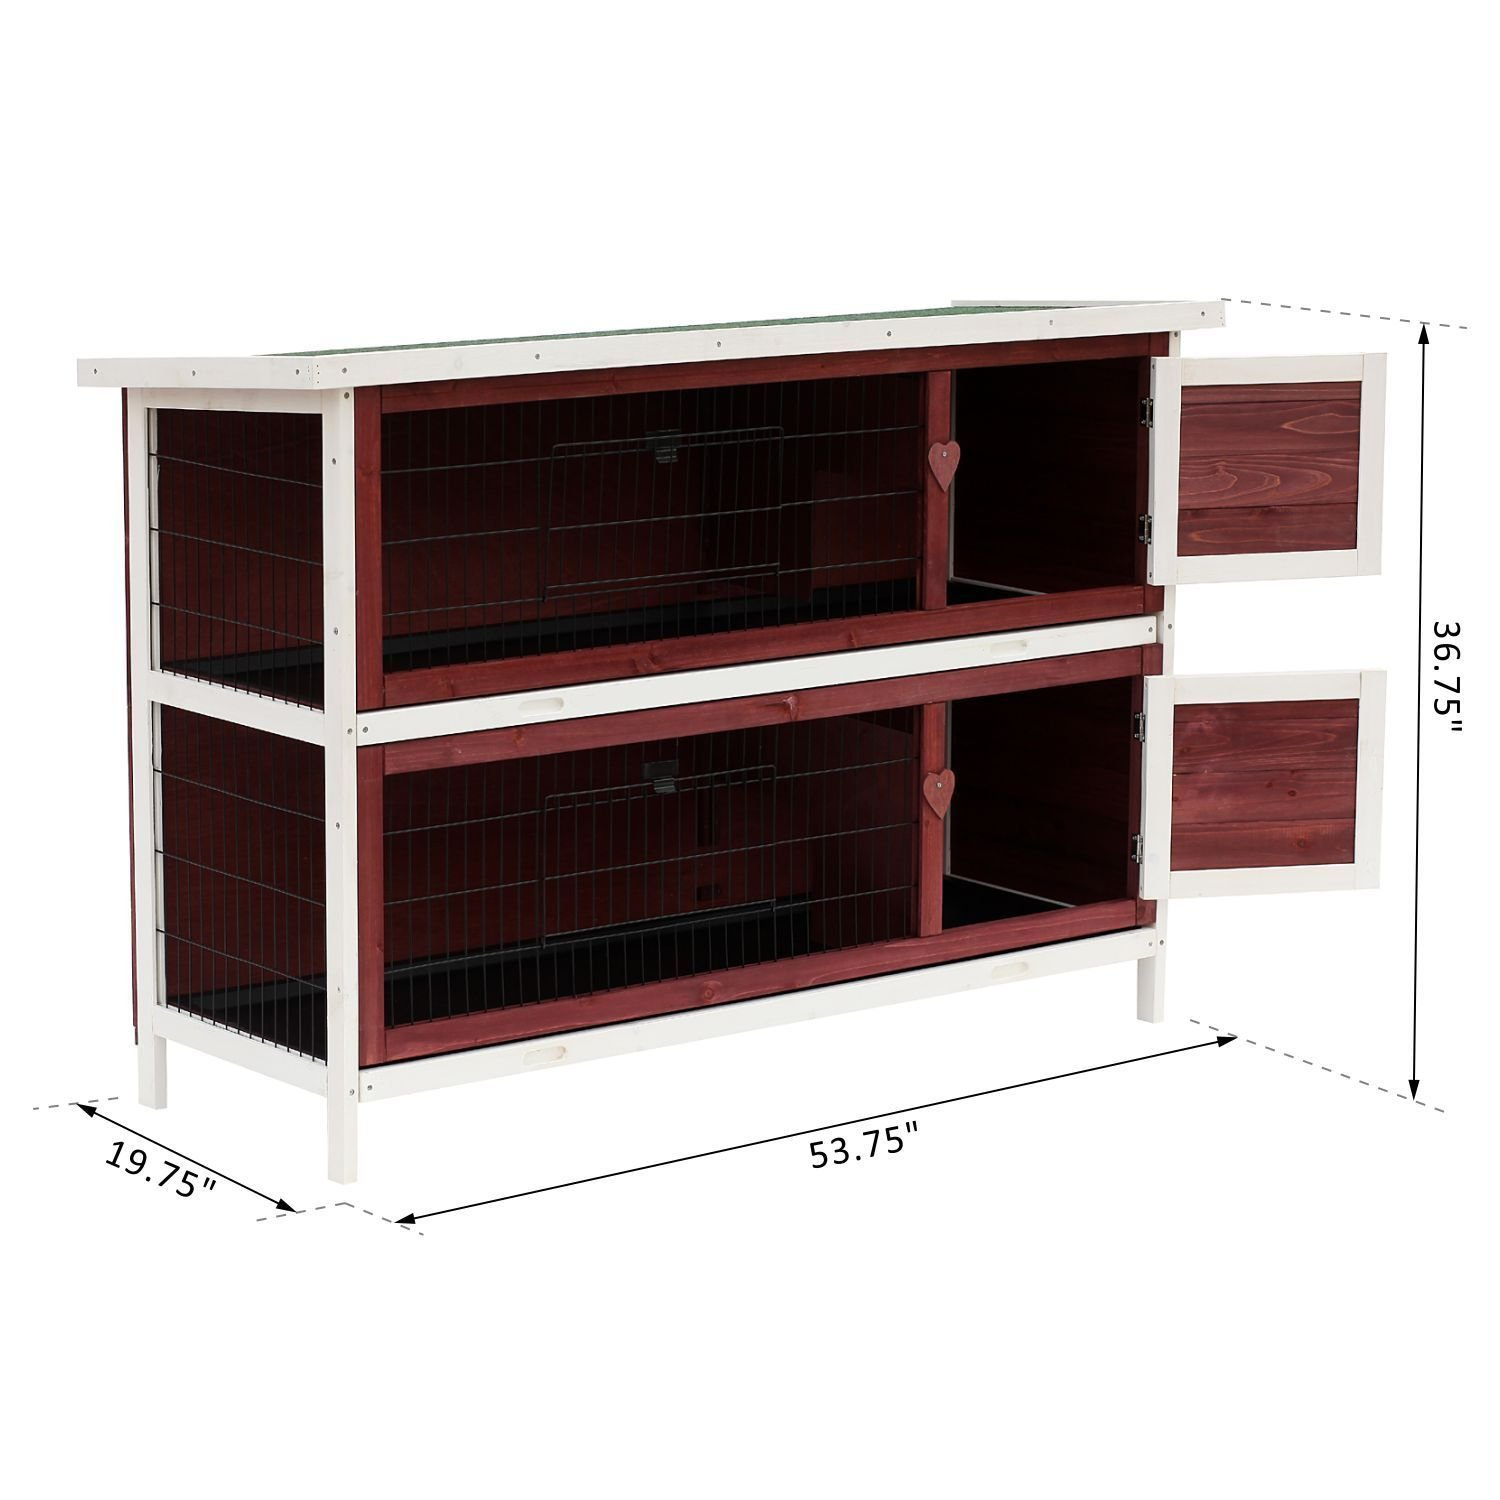 PawHut 54'' 2-Story Weatherproof Stackable Elevated Wooden Rabbit Hutch with Enclosed Run and Pull-Out Trays by PawHut (Image #7)